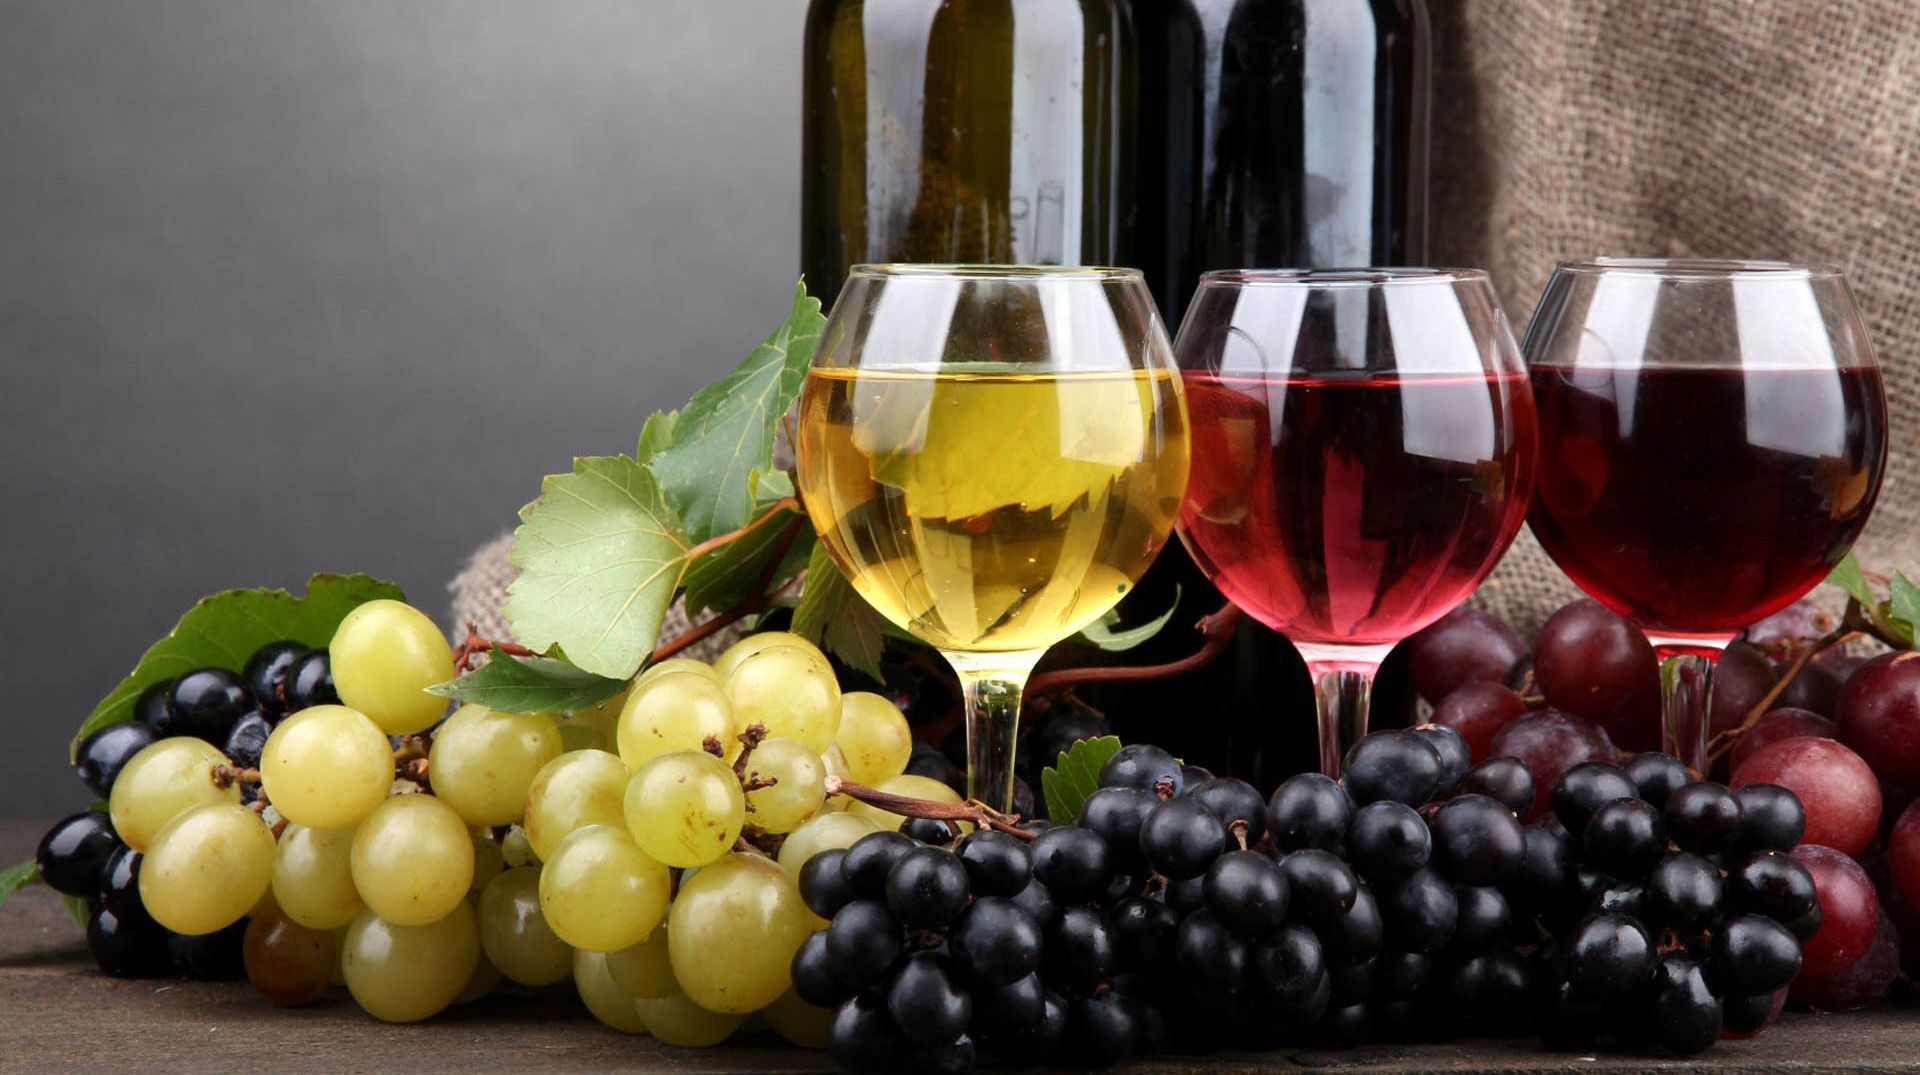 ​RCap expects 'huge capital gains' from two leading vineyards of India